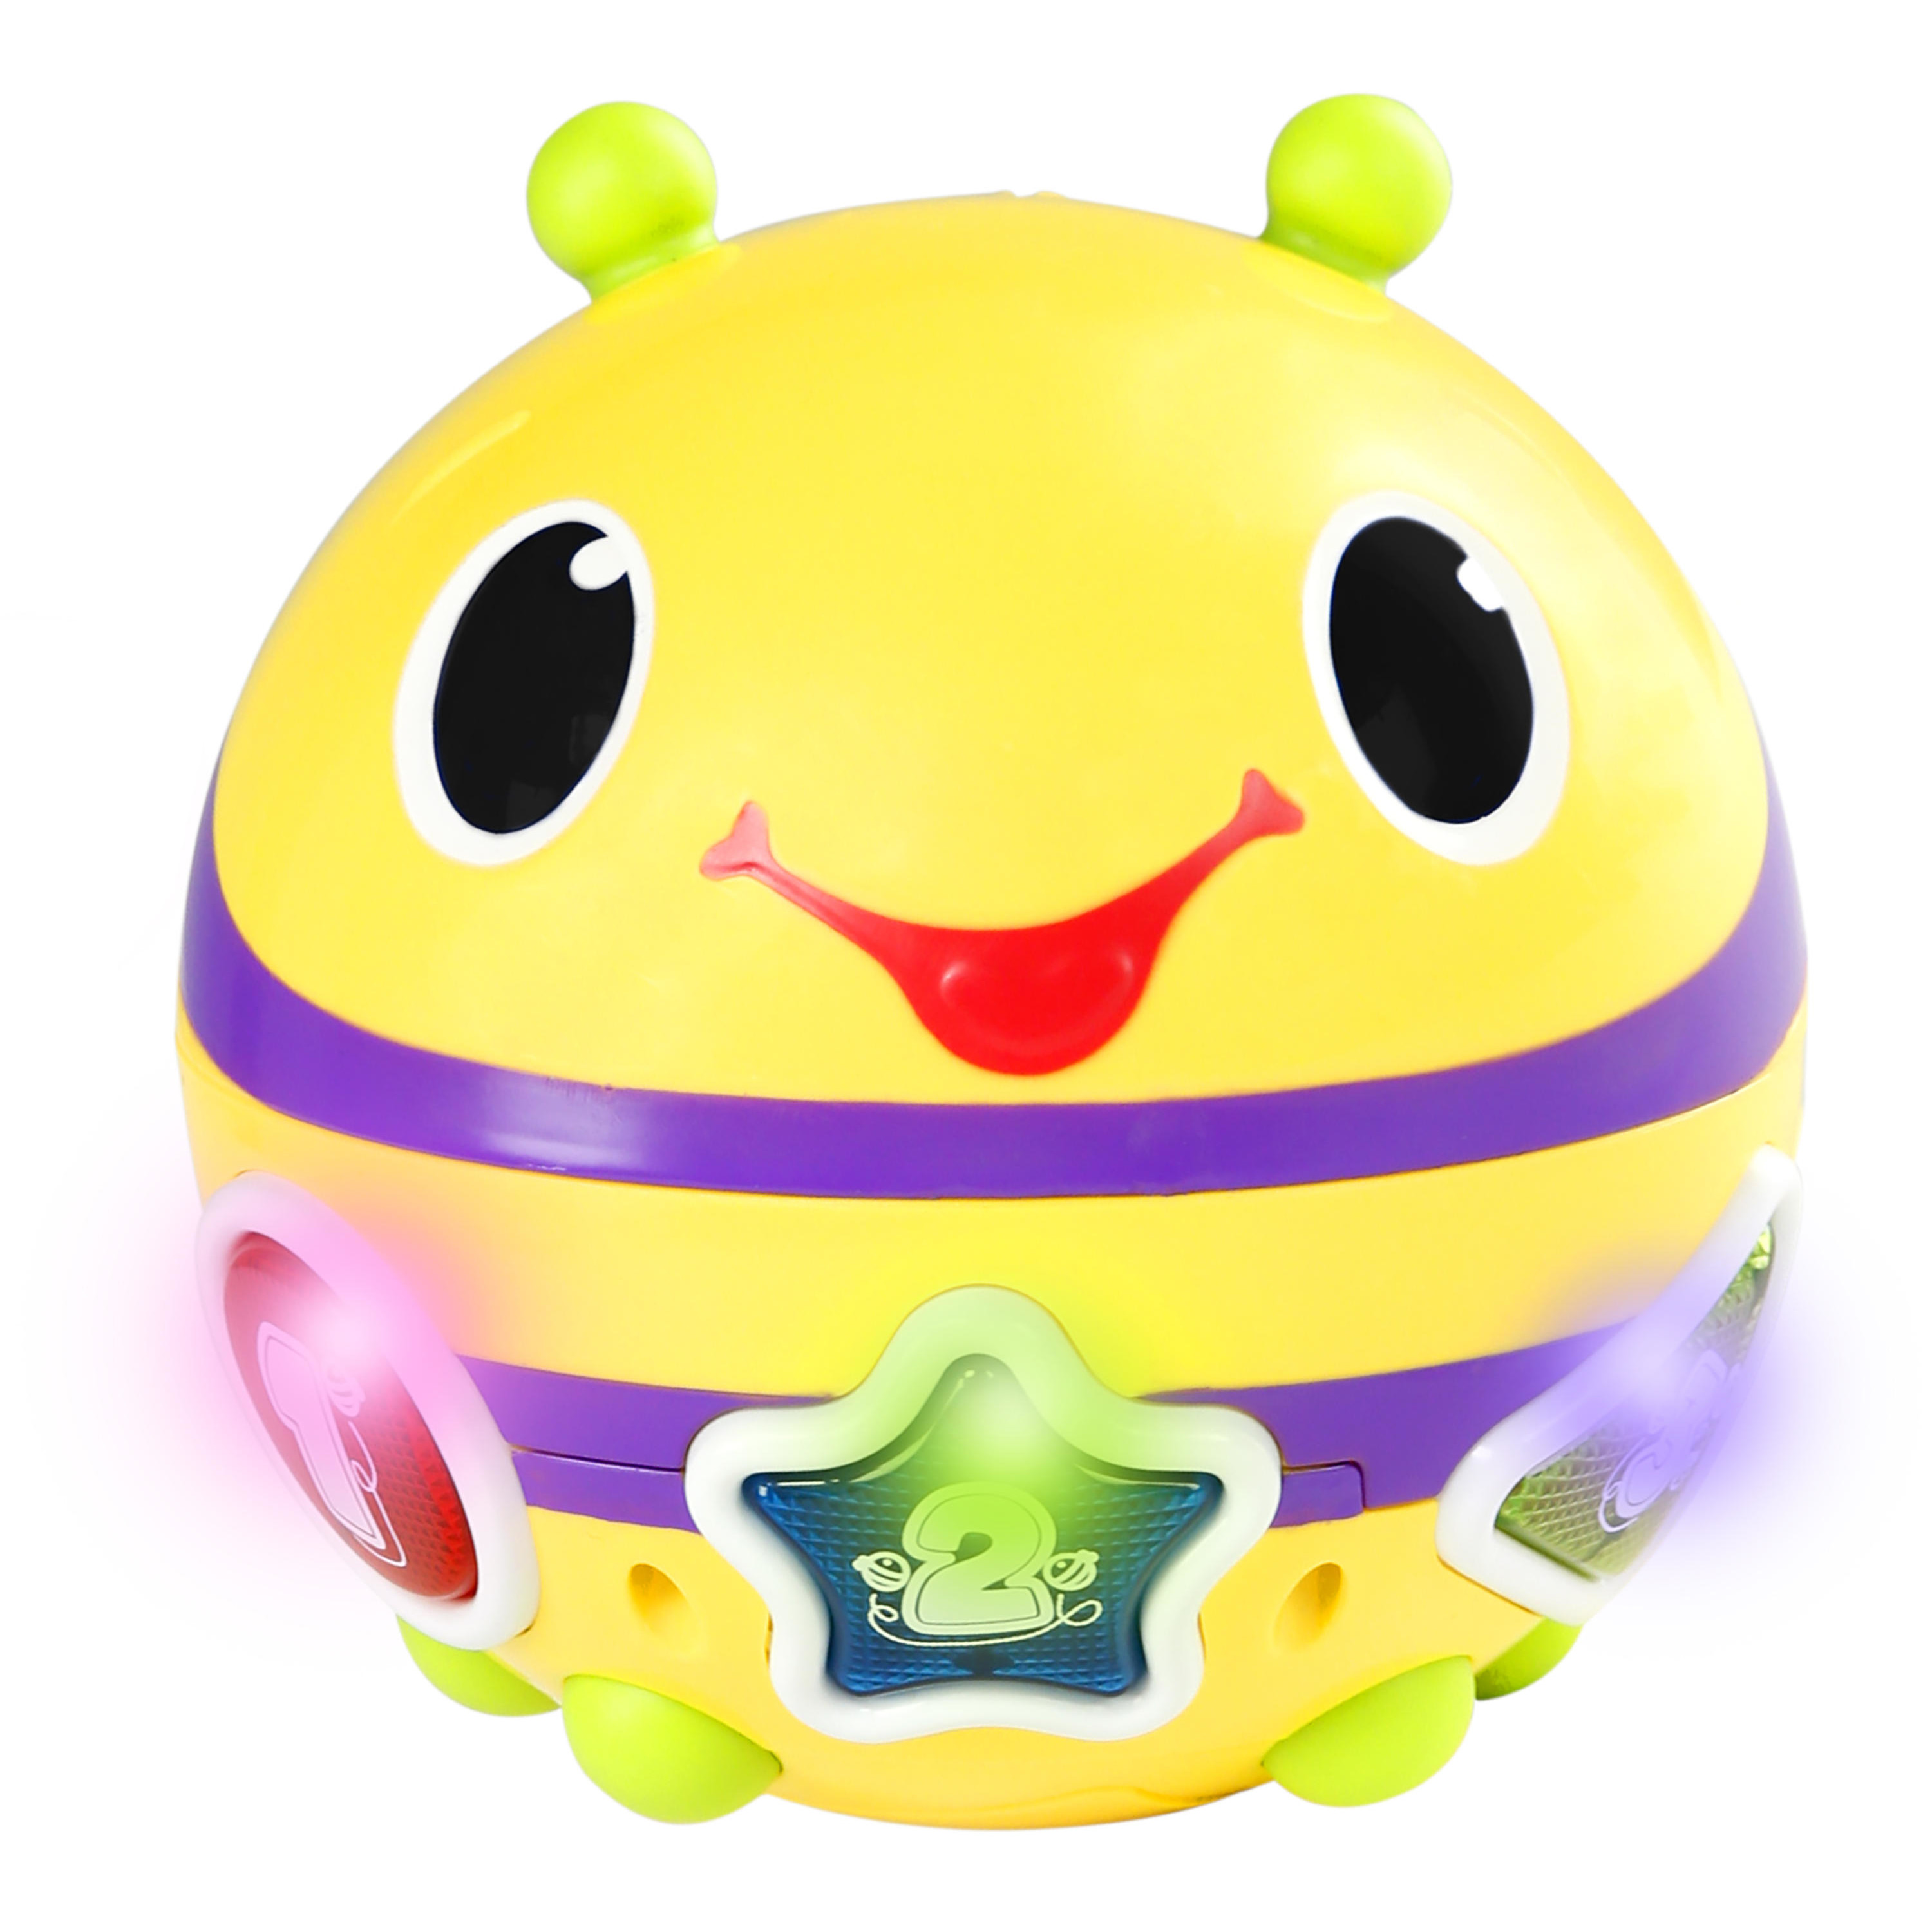 Bright Starts Roll & Chase Bumble Bee